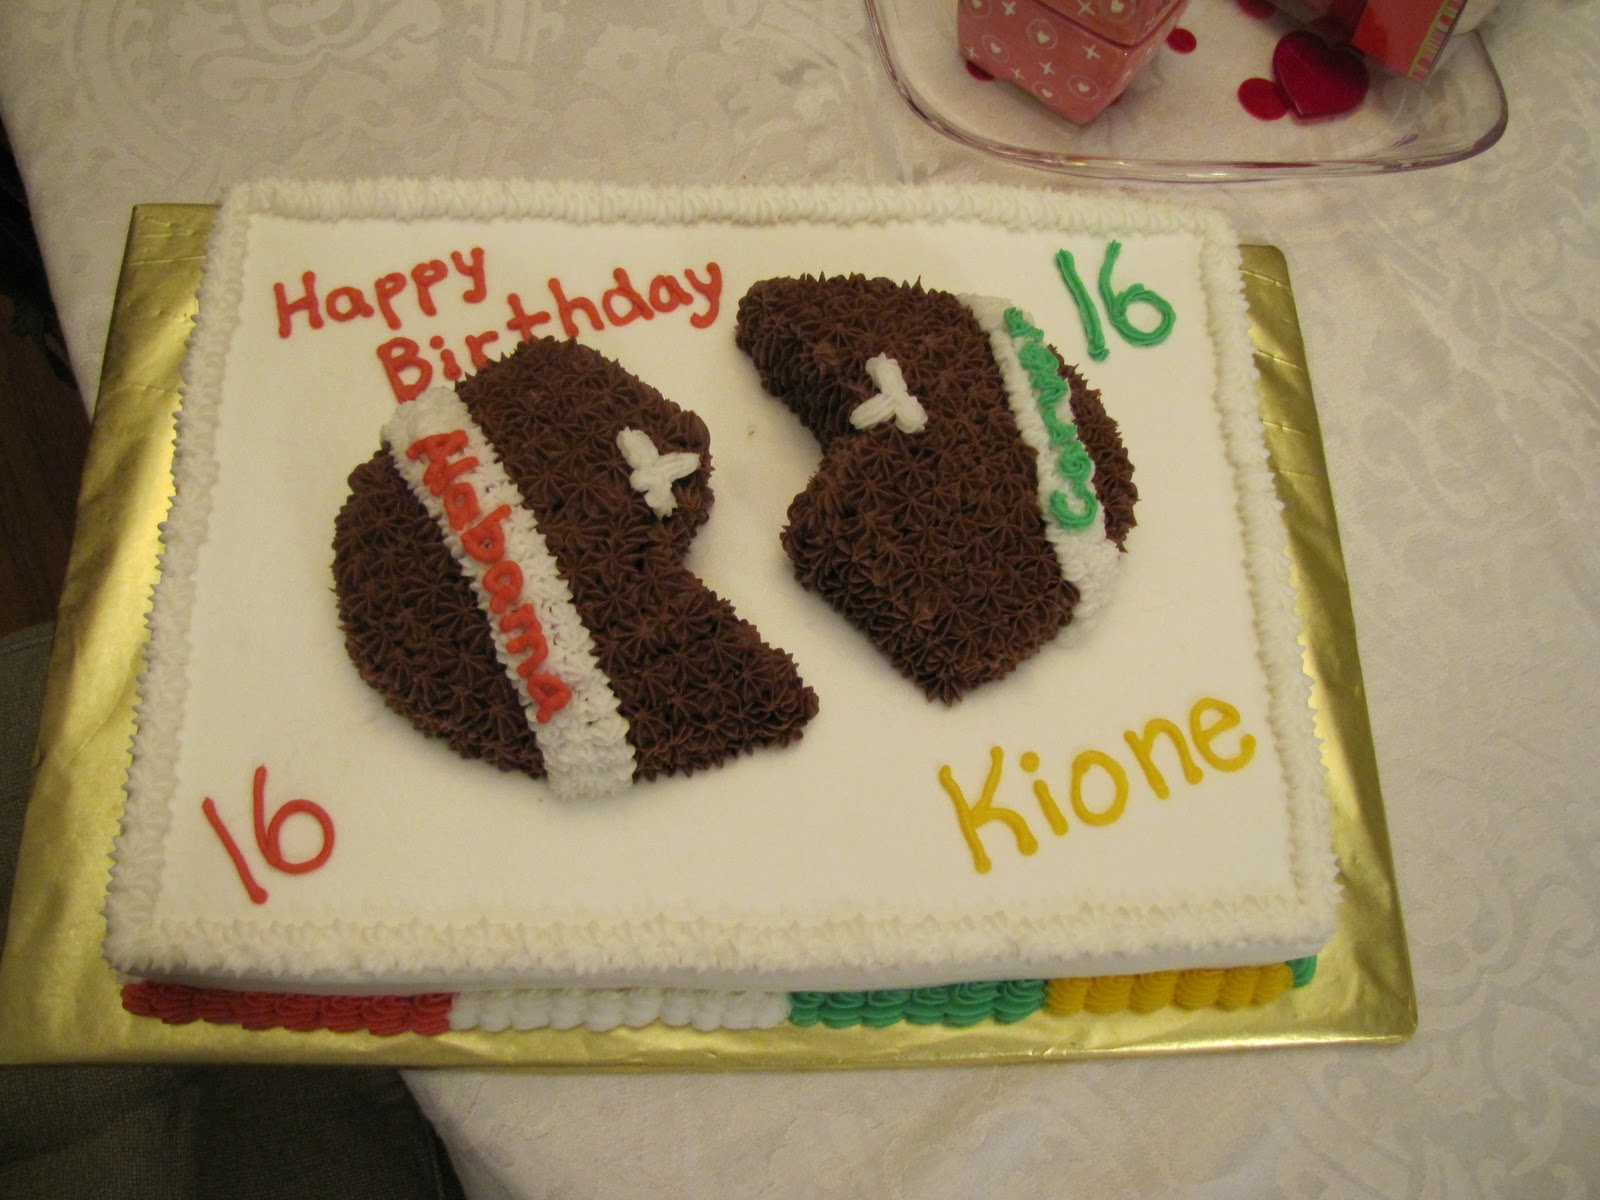 Football Themed Cakes http://cakegal.blogspot.com/2009/05/sports-themed-cakesgraduation-cakes.html